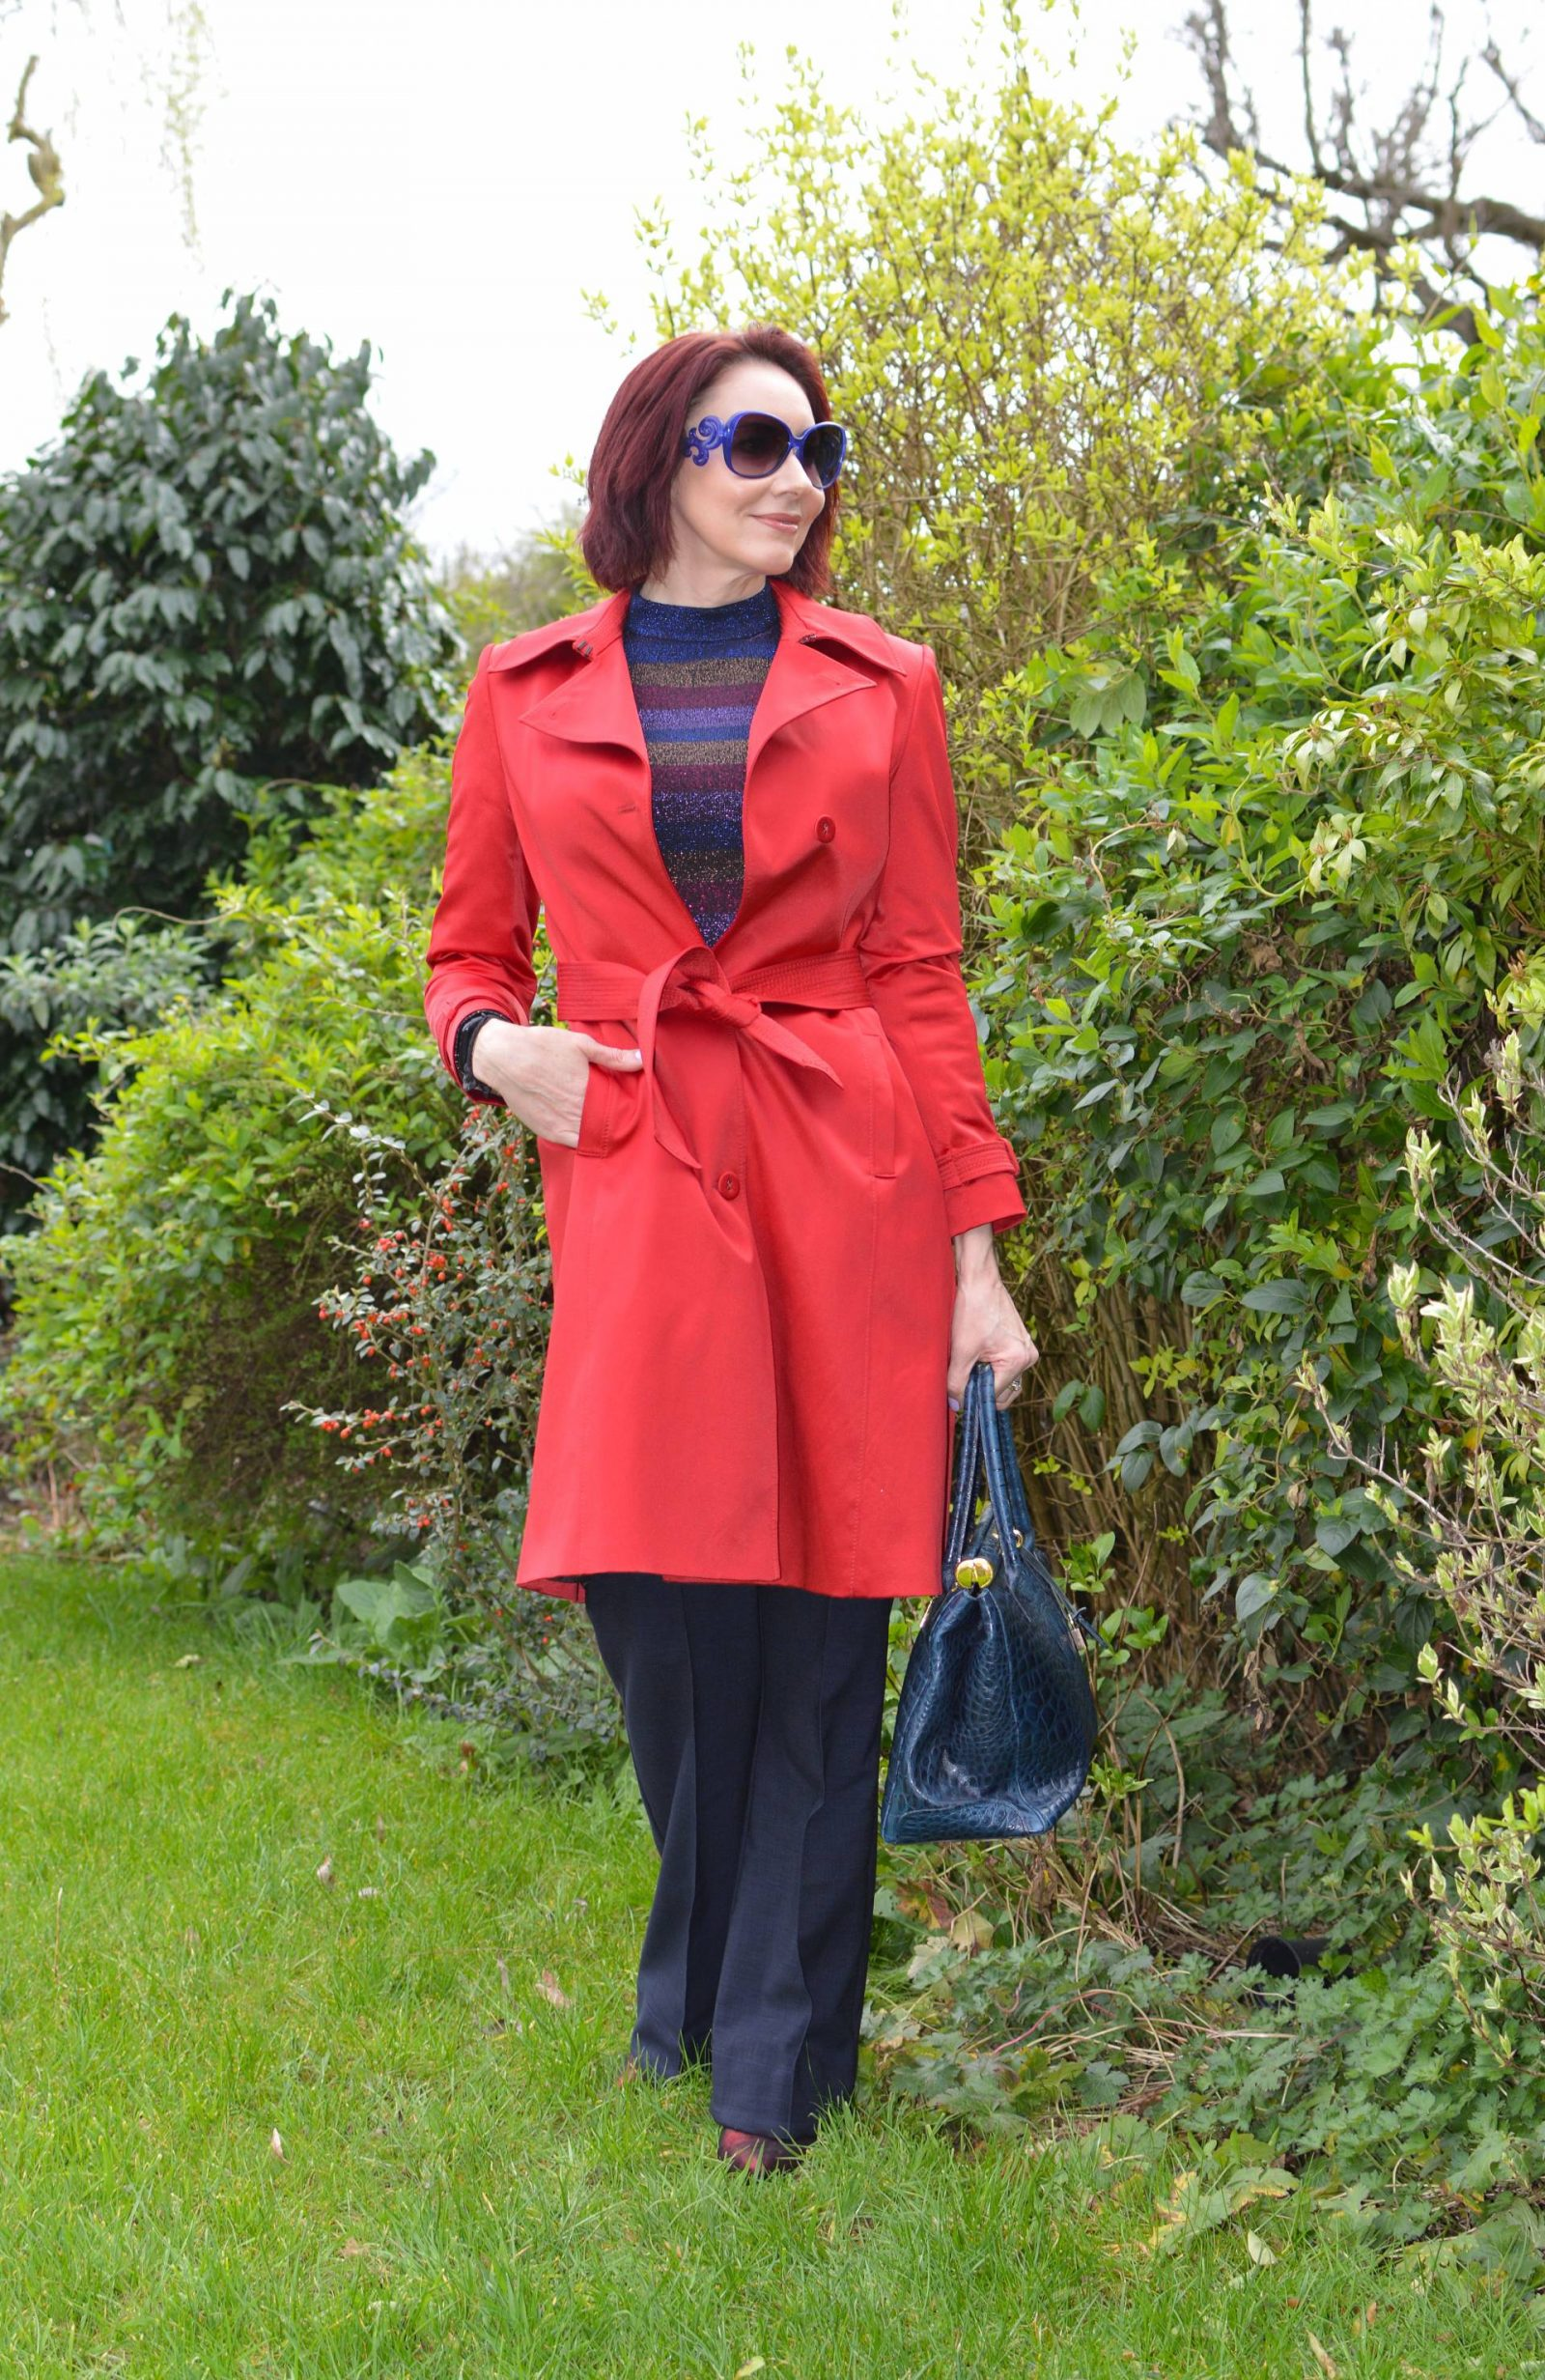 Sparkly Stripes and Bright Red Trench Coat, Oasis metallic stripe jumper, Finery Barby trousers, Biba red trench coat